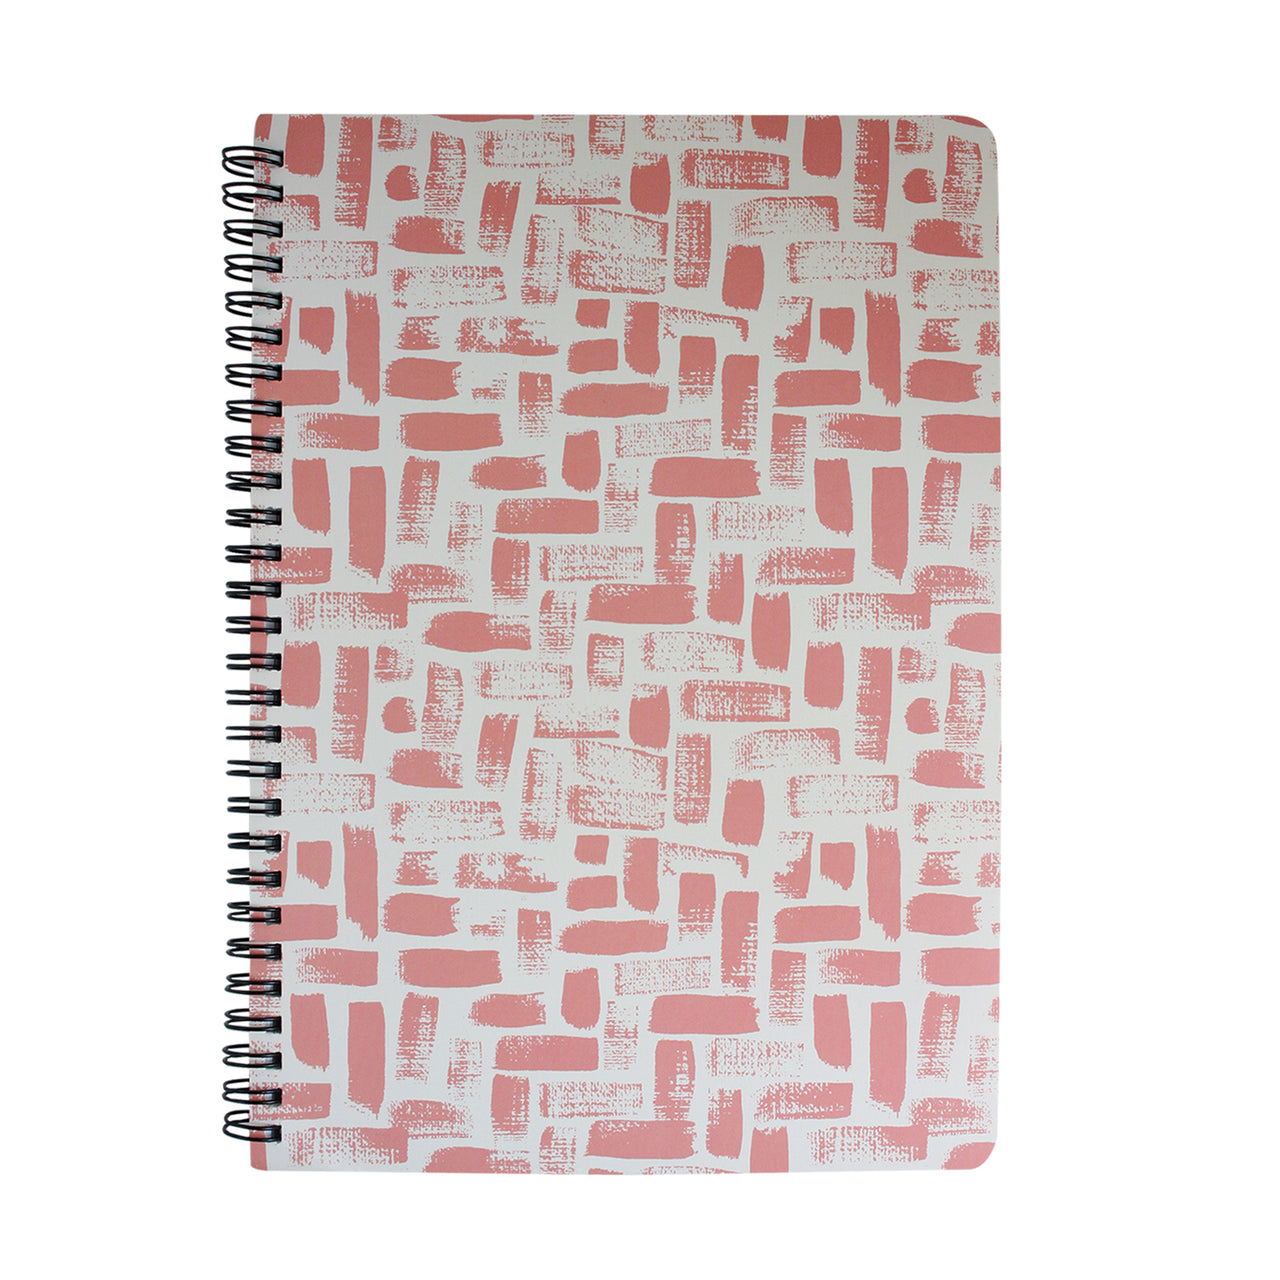 B5 Printed Notebook - Pink / White